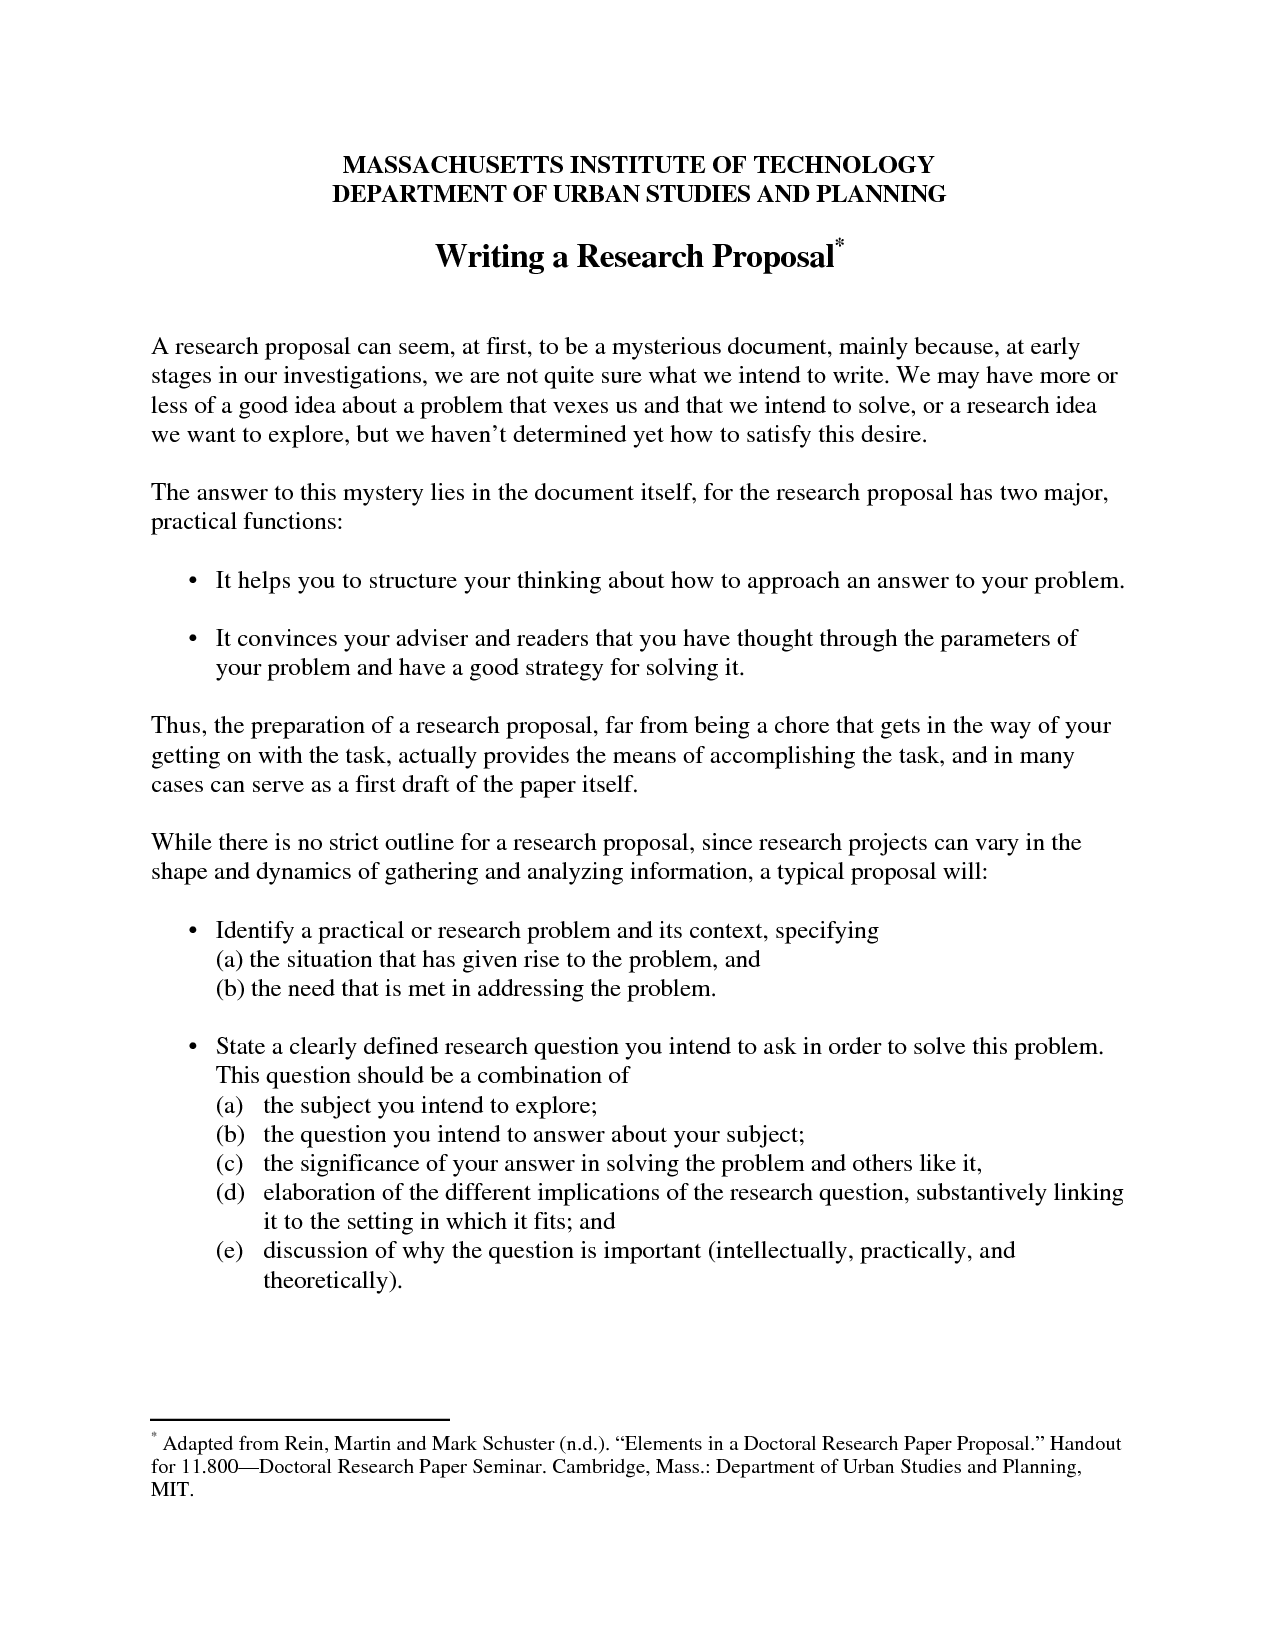 028 Research Paper Quotes What Does Proposal Look Like 629236 Amazing Funny Direct Mla Format Full